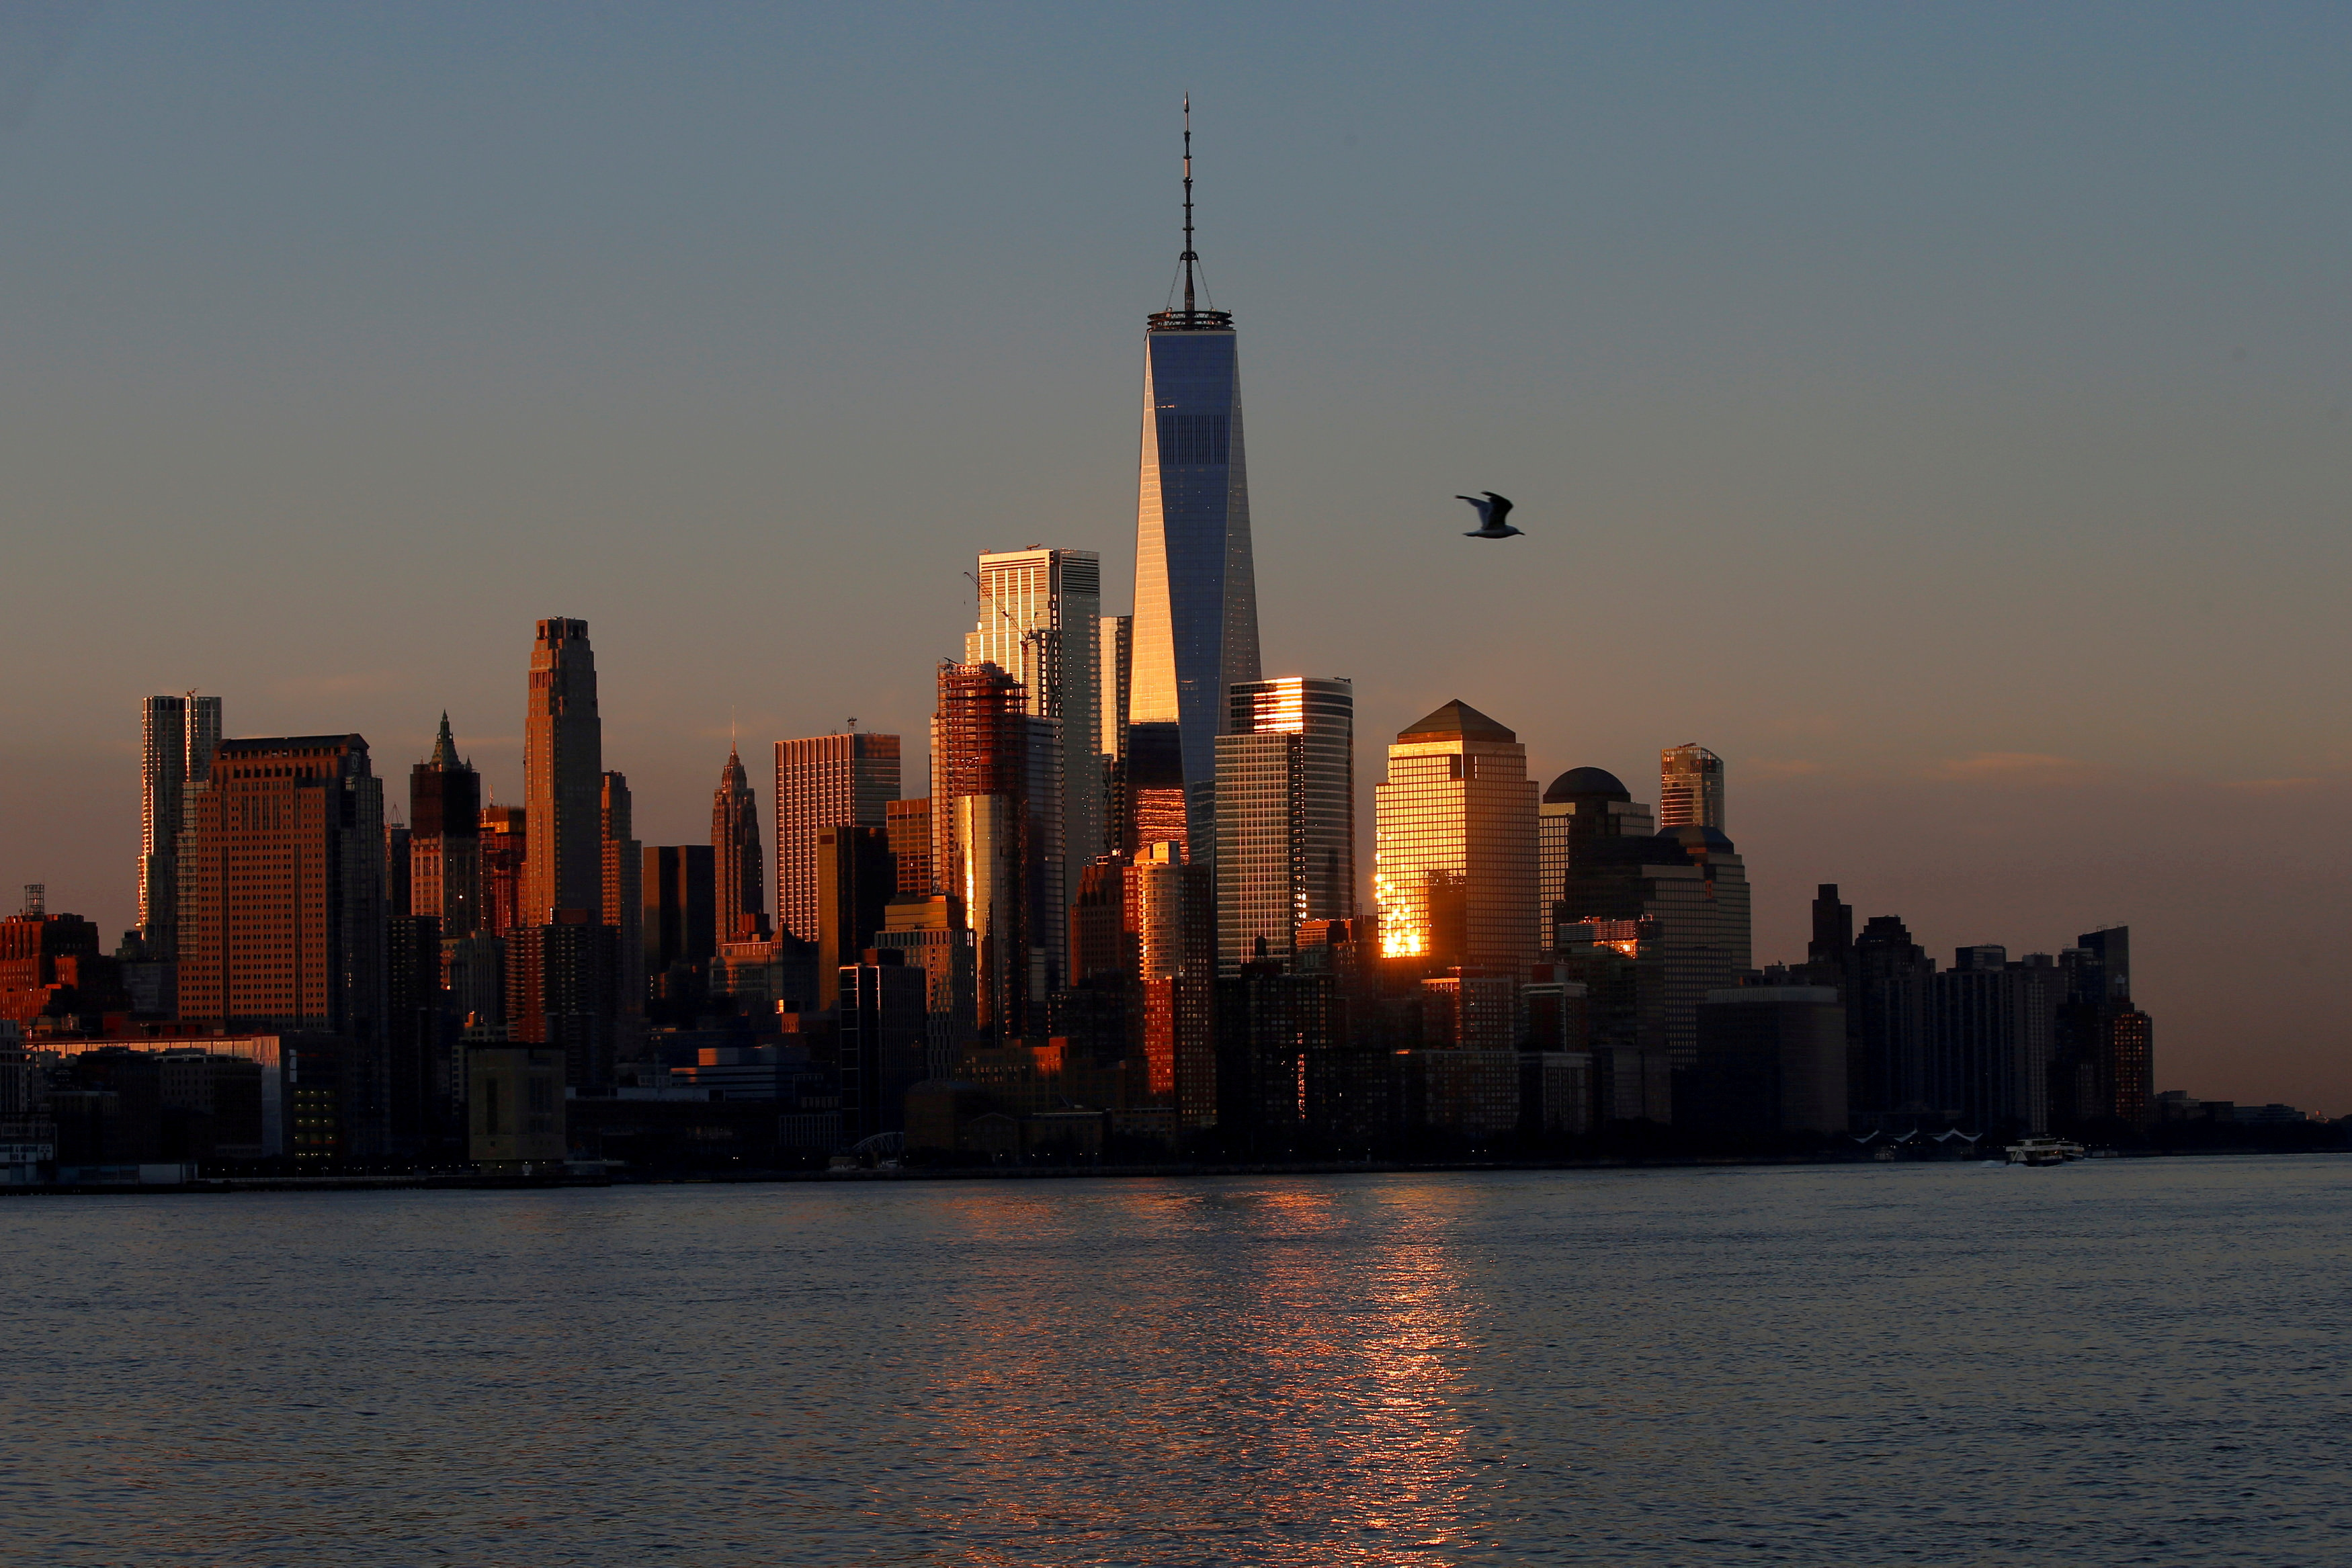 A view of the One World Trade Centre tower and the lower Manhattan skyline of New York City at sunrise as seen from Hoboken, New Jersey, U.S., August 9, 2017. REUTERS/Mike Segar